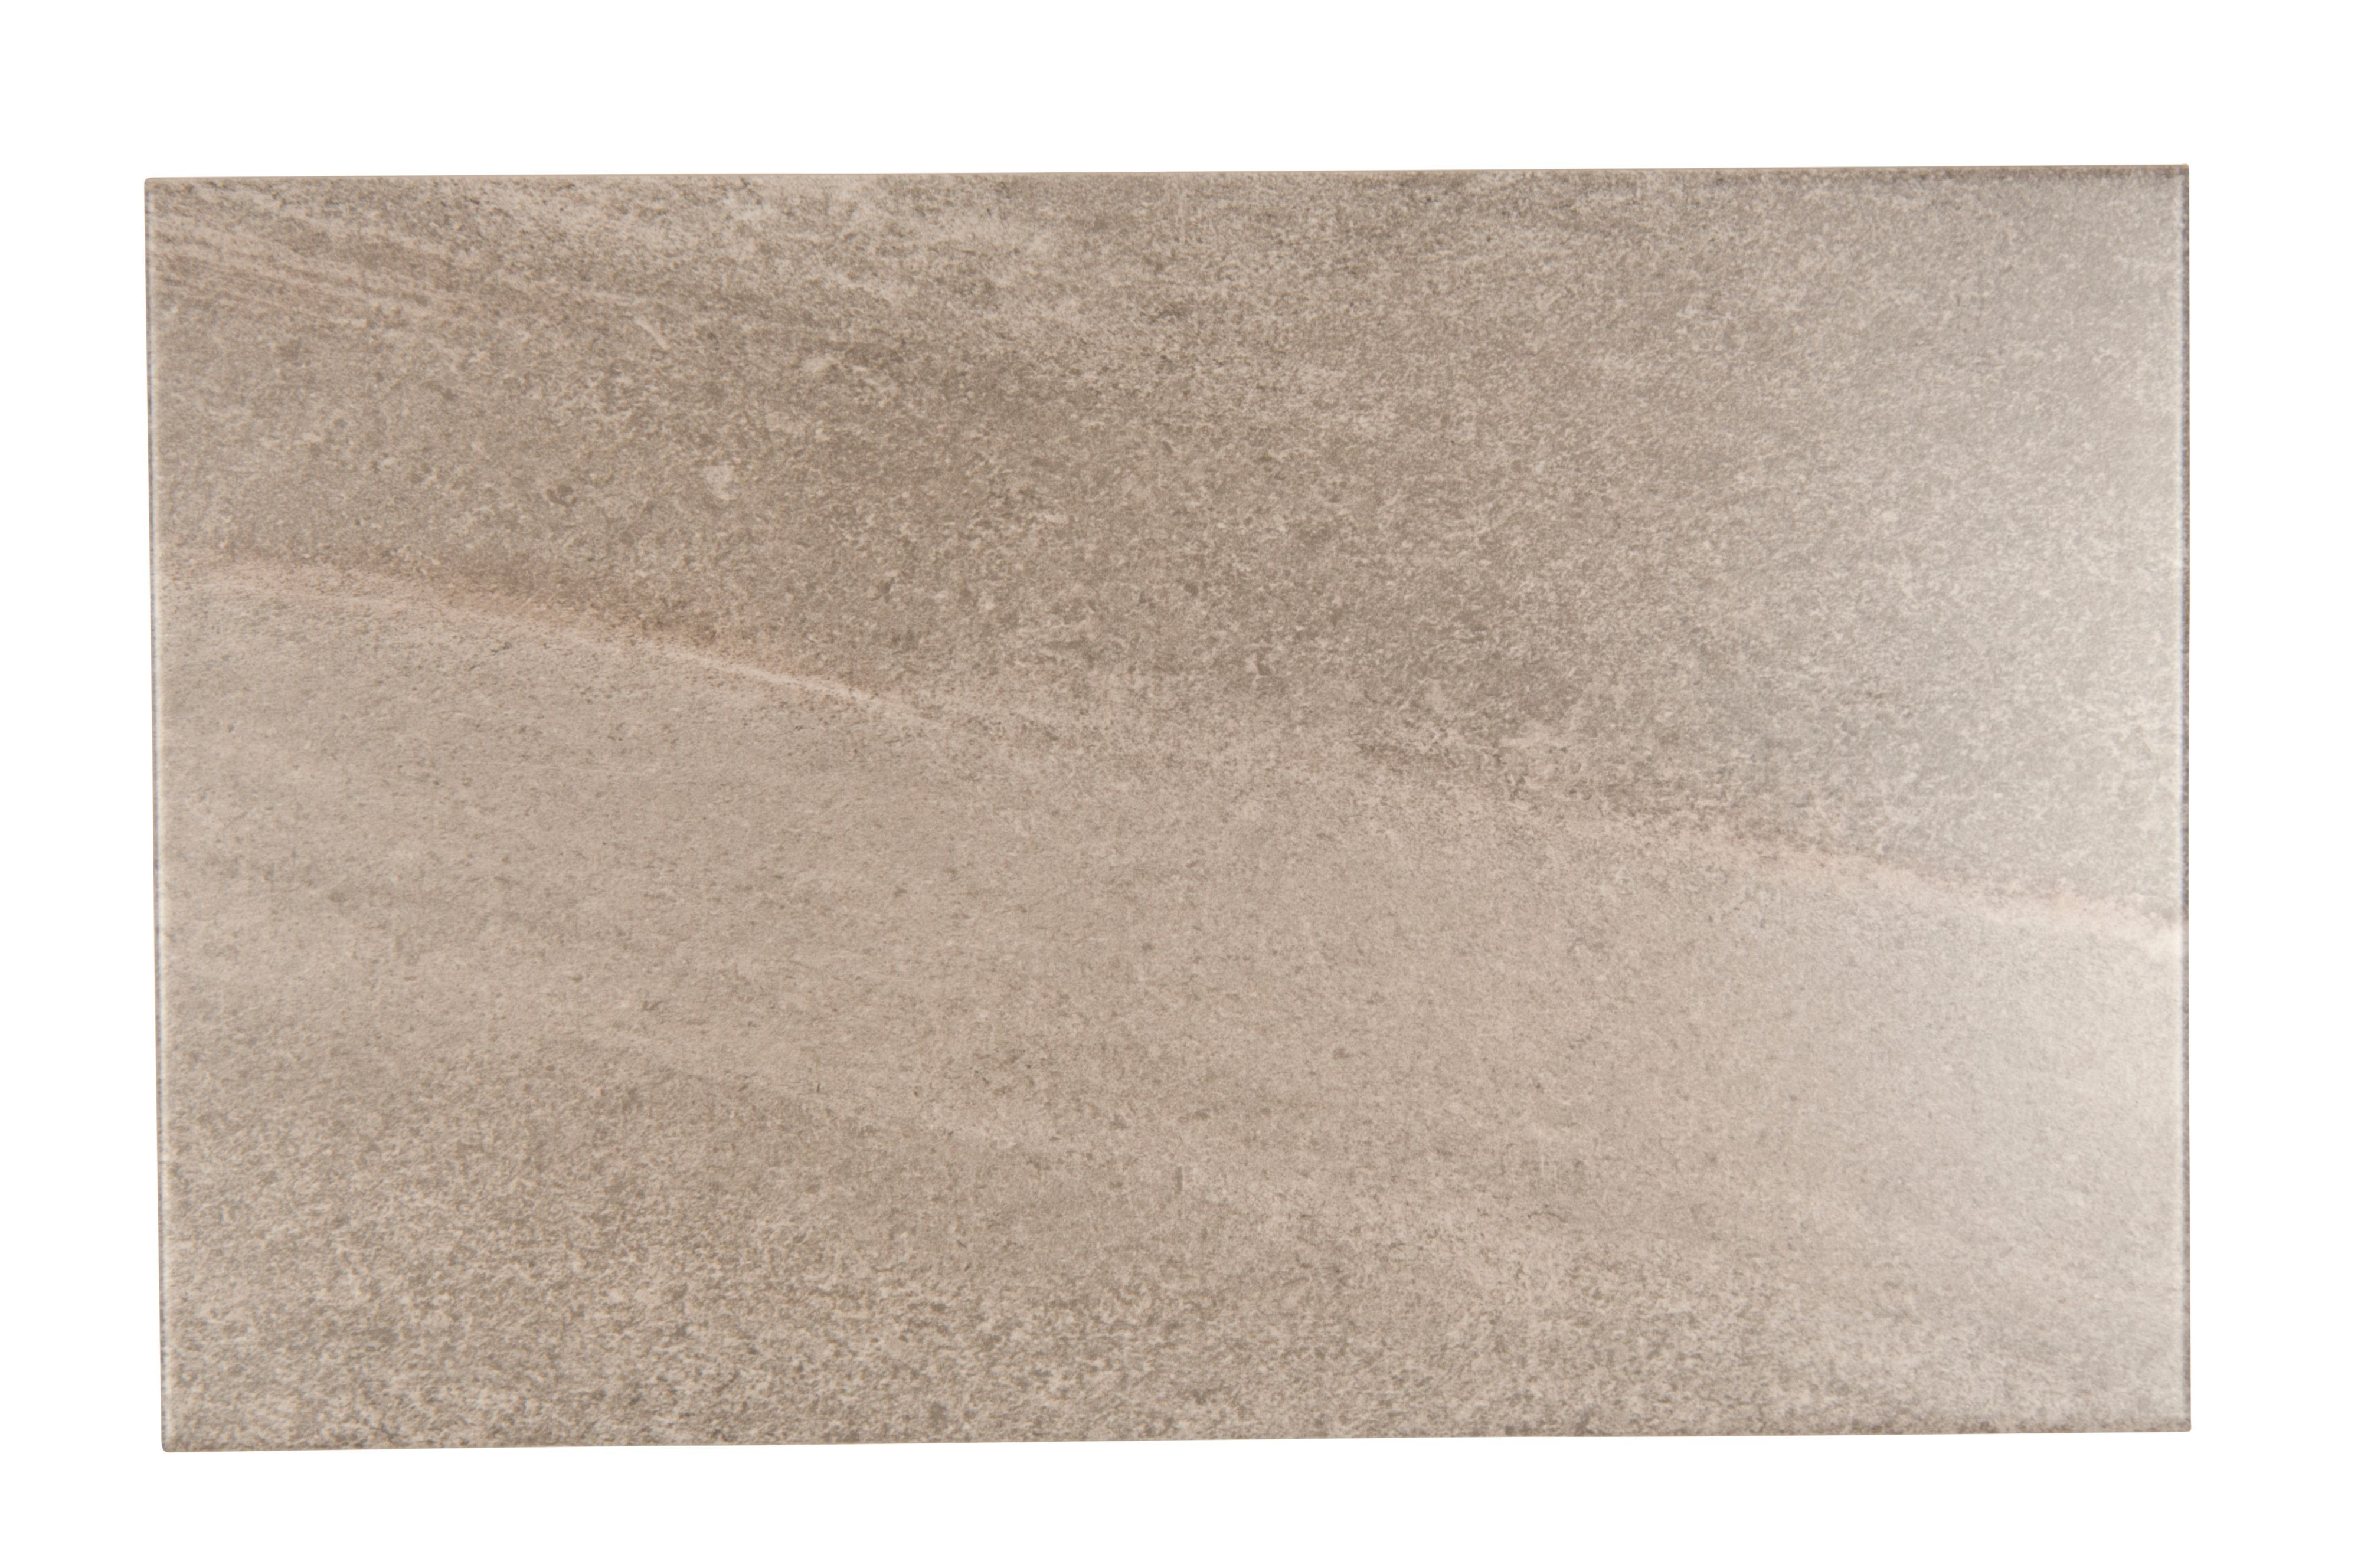 Diy at bq fiji grey stone effect ceramic wall tile pack of 10 l400mm dailygadgetfo Images